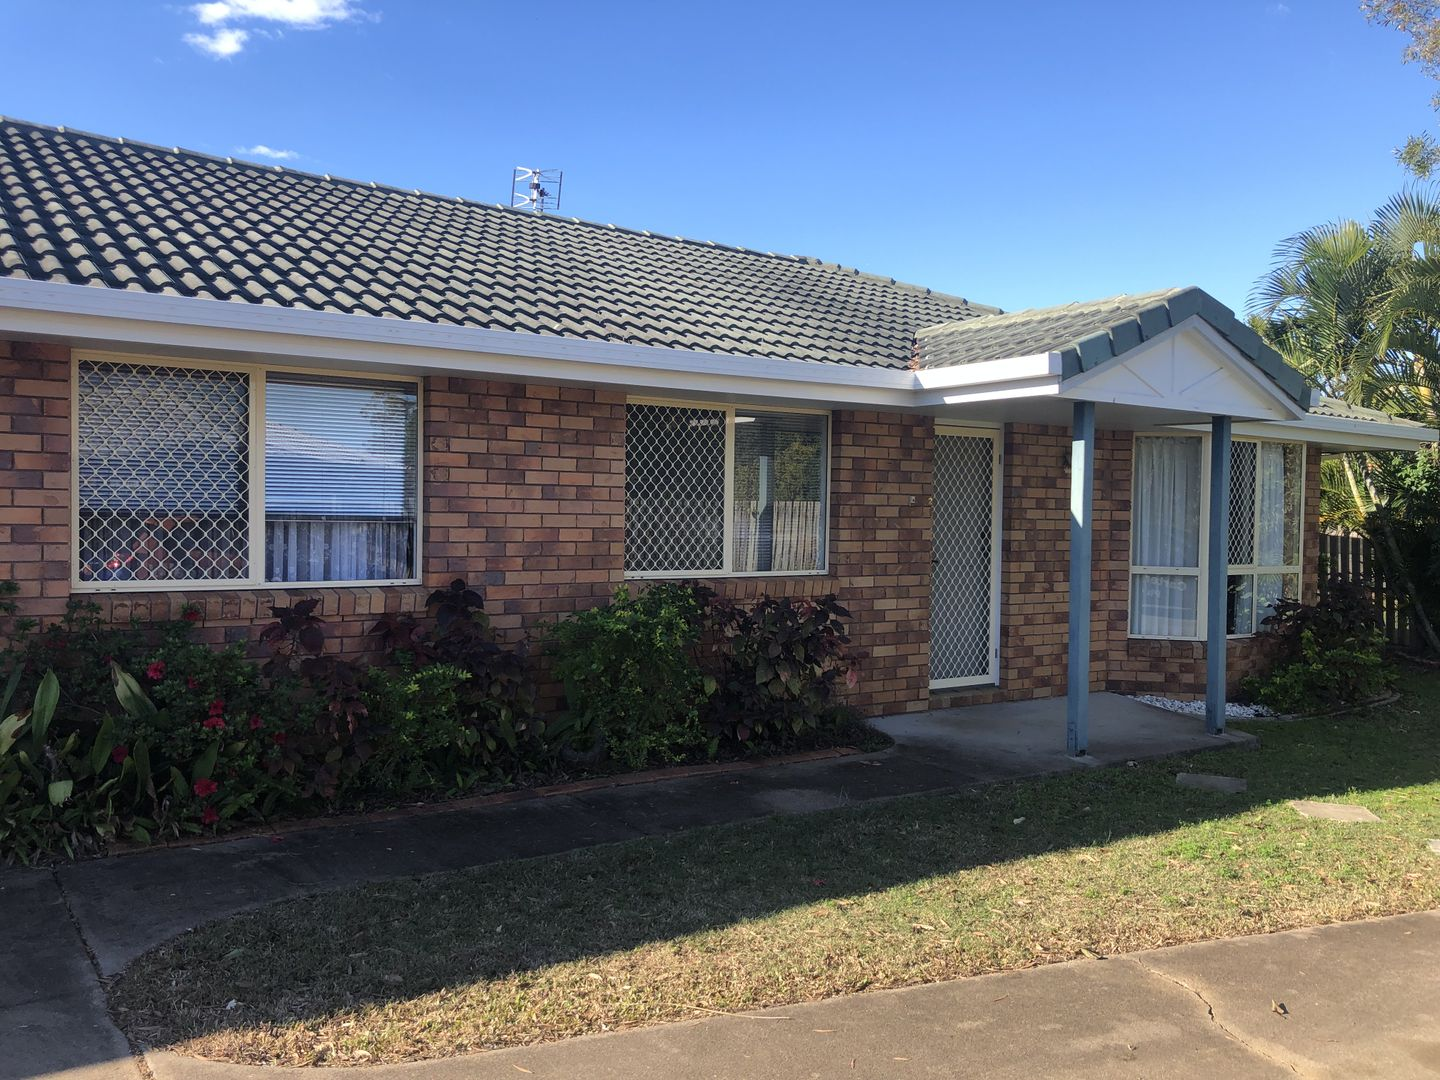 2/9 Forest Close, Kawungan QLD 4655, Image 0